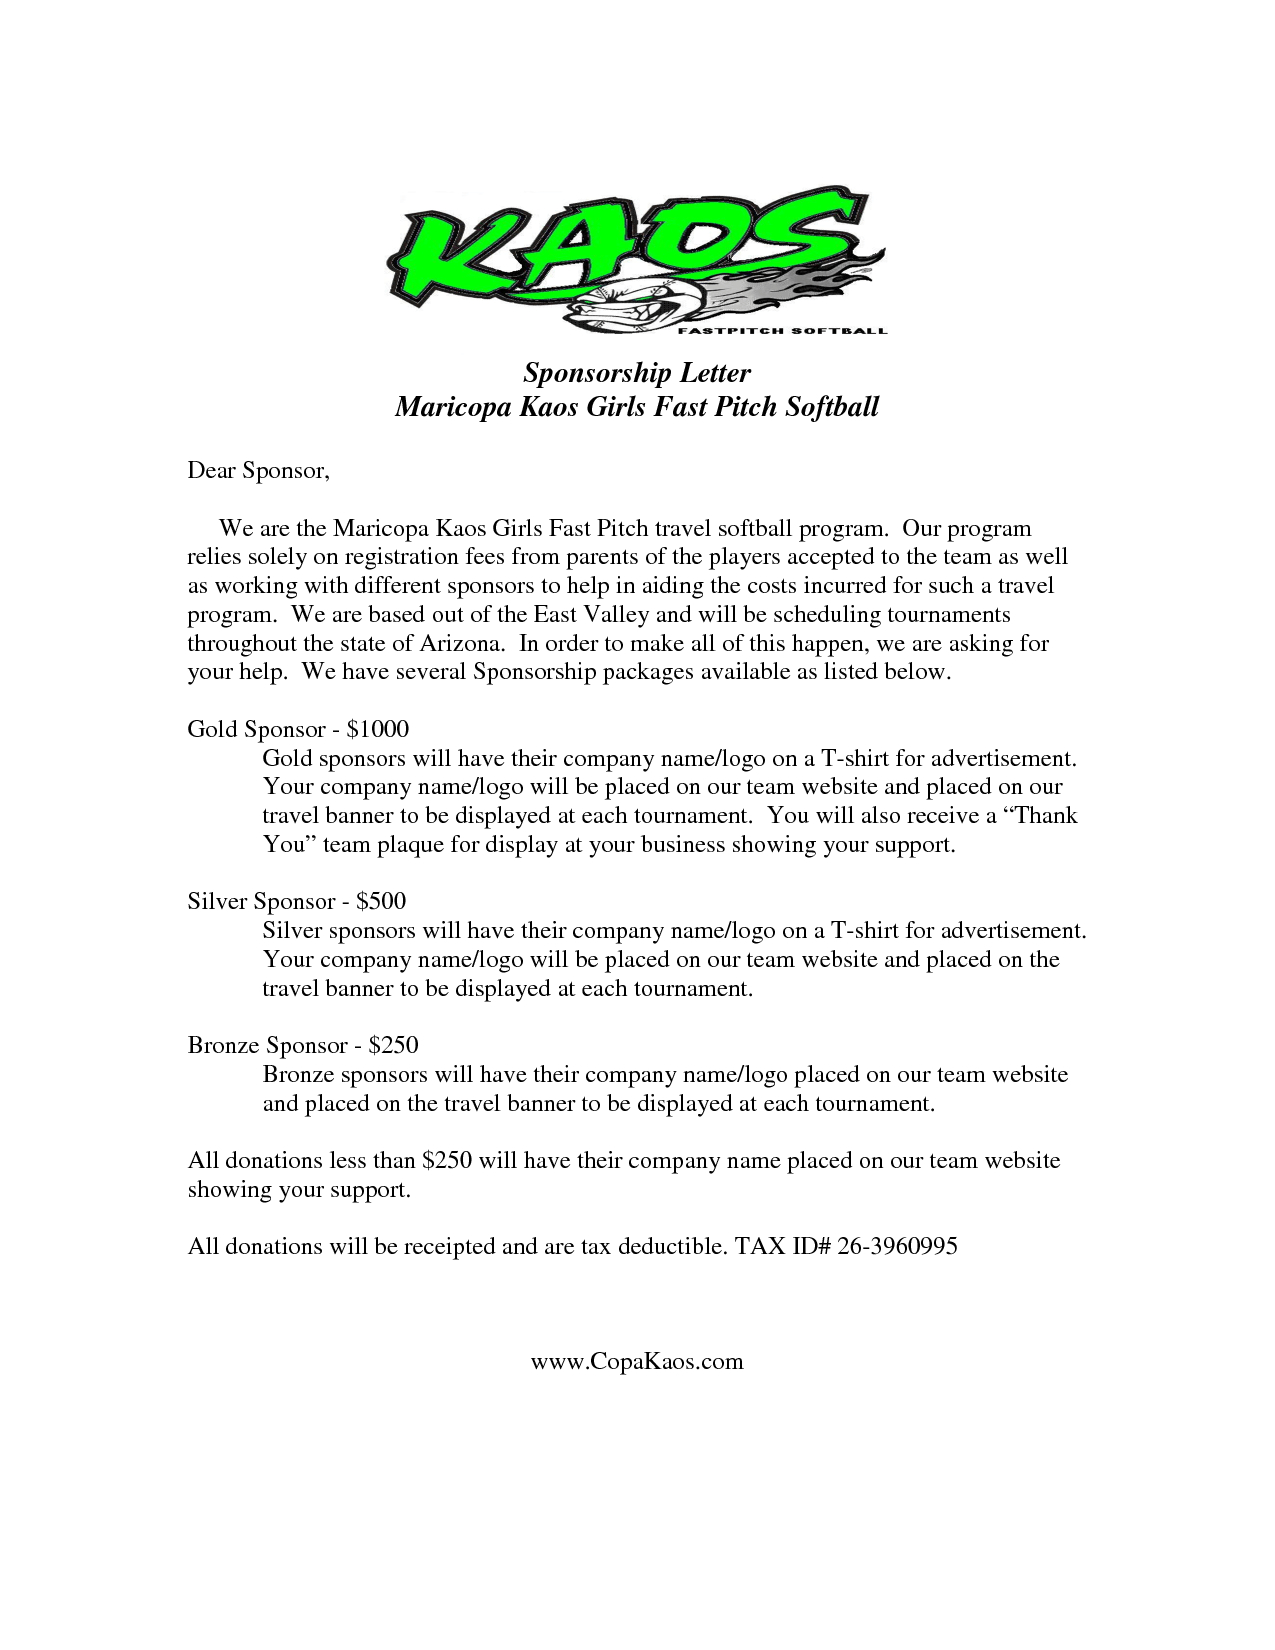 Charity Donation Request Letter Template - Image Result for Sample Sponsor Request Letter Donation